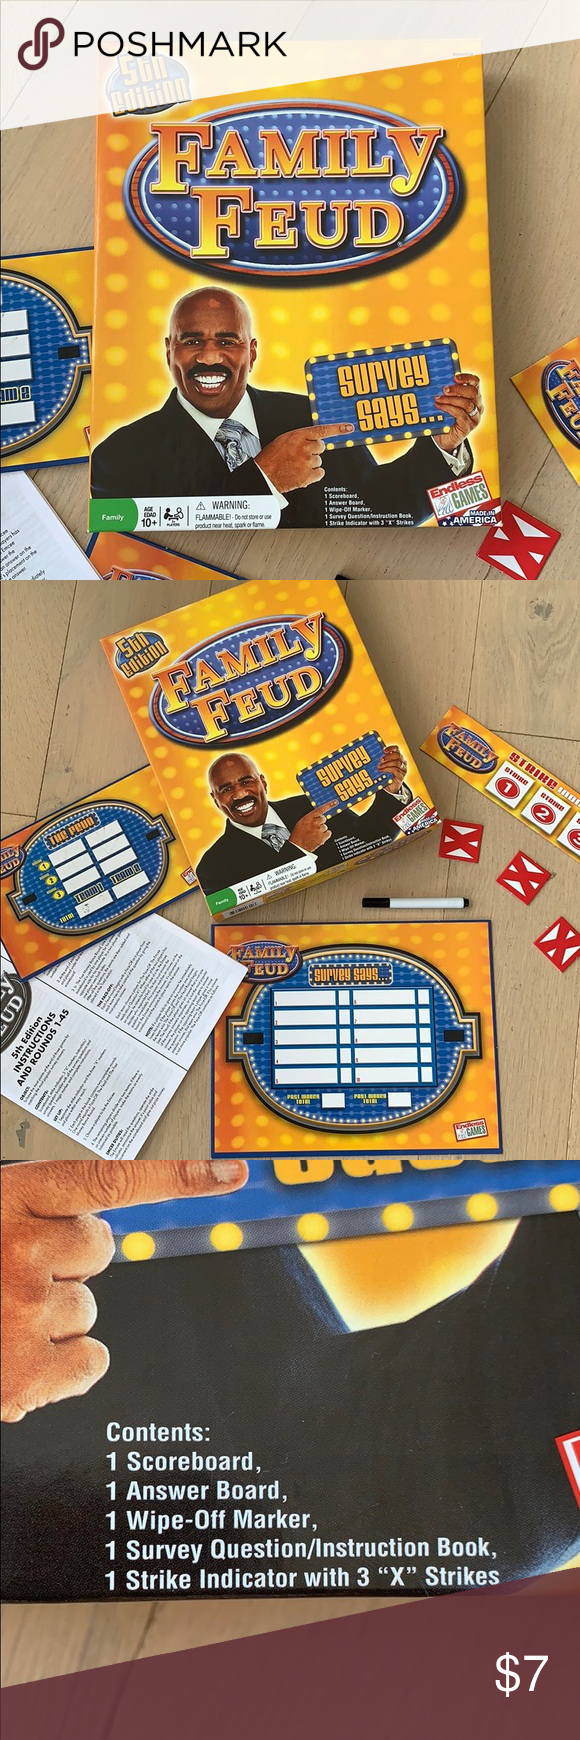 Family Feud 5th Edition Board Game Preloved box and all